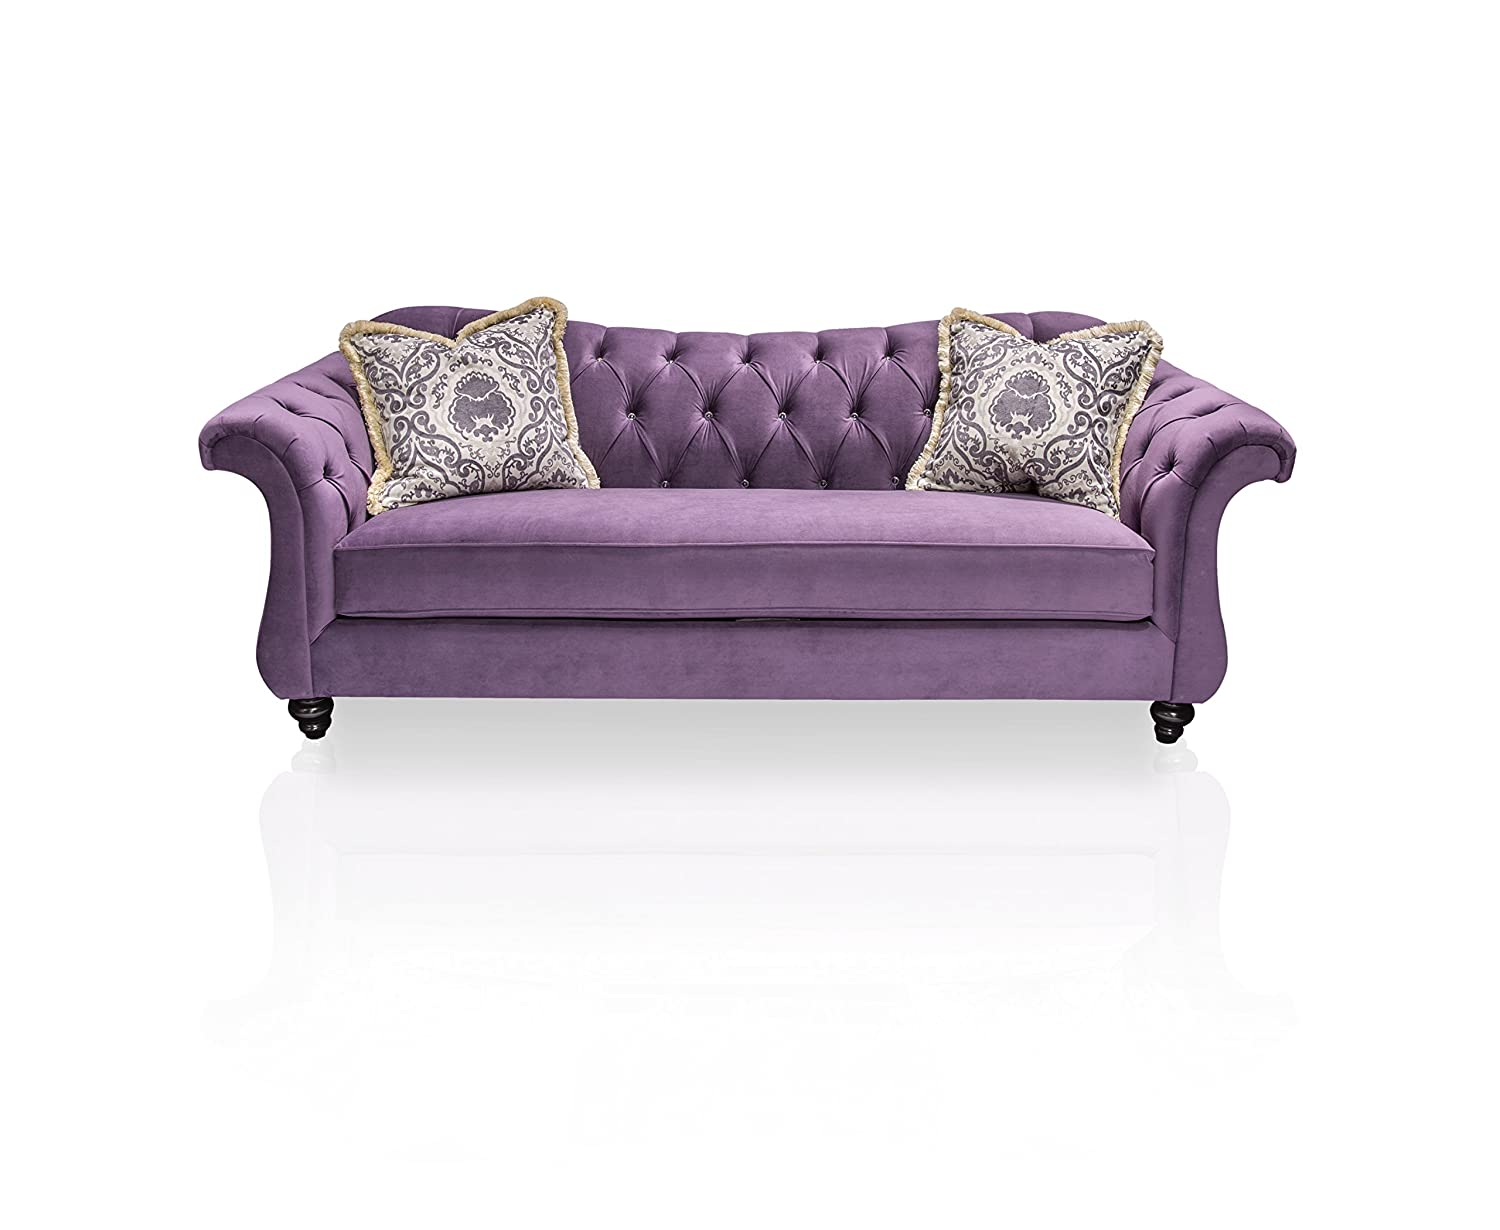 Amazon.com: Furniture Of America Ivorah Glamorous Sofa, Purple: Kitchen U0026  Dining